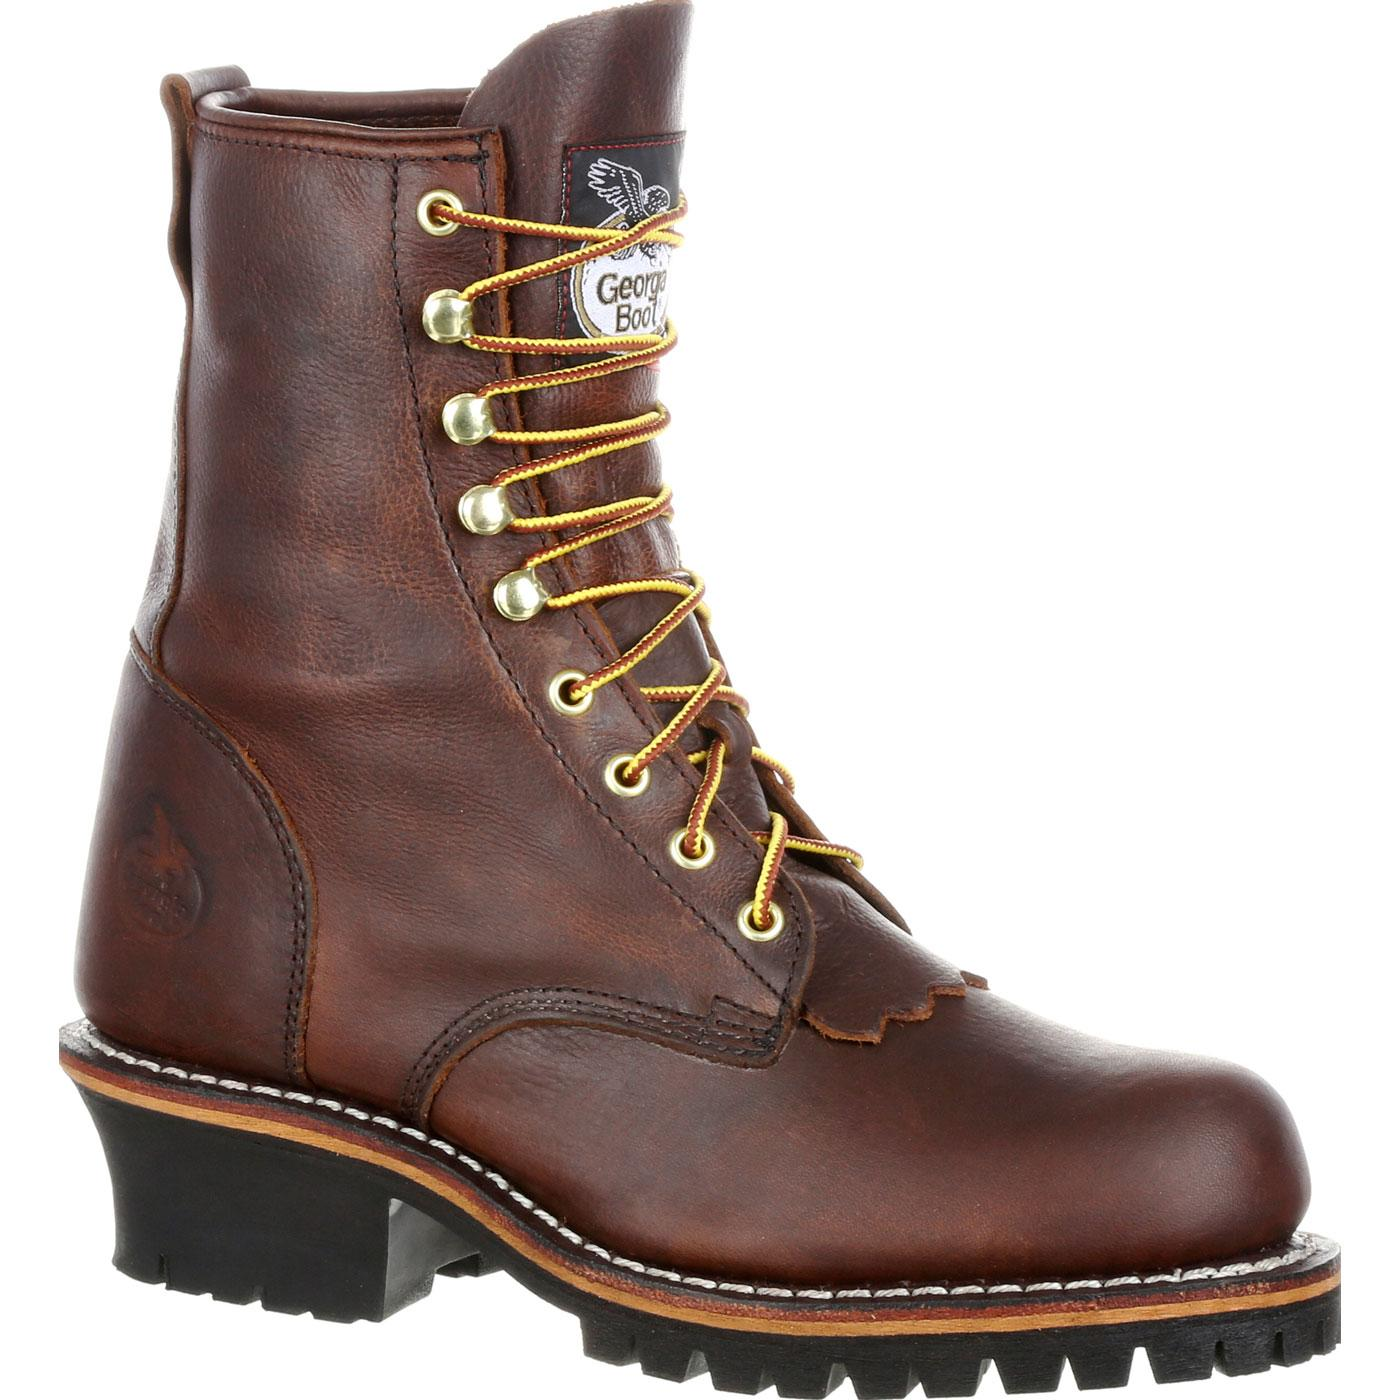 Georgia Boot Men S 8 Inch Brown Logger Work Boot Gb0115ia